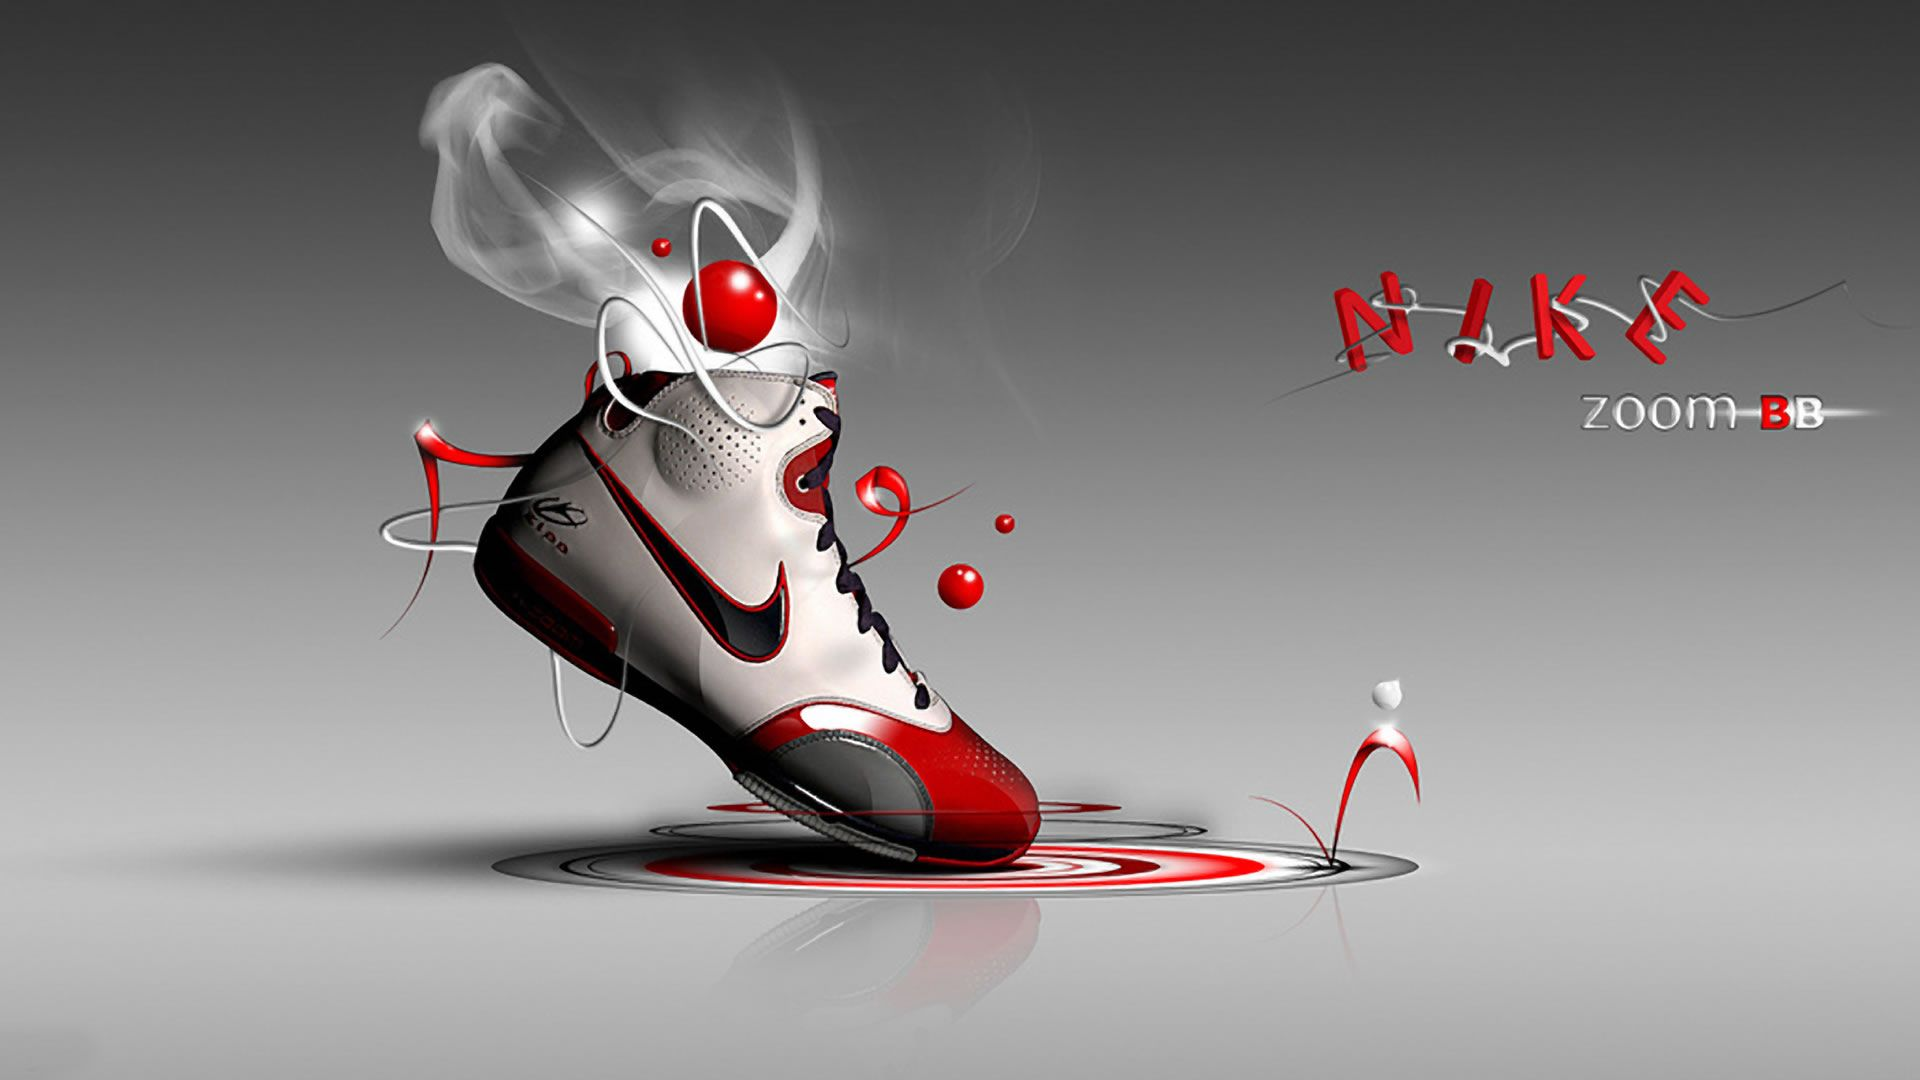 Nike Zoom Wallpaper Wallpapers For Desktop and Mobile